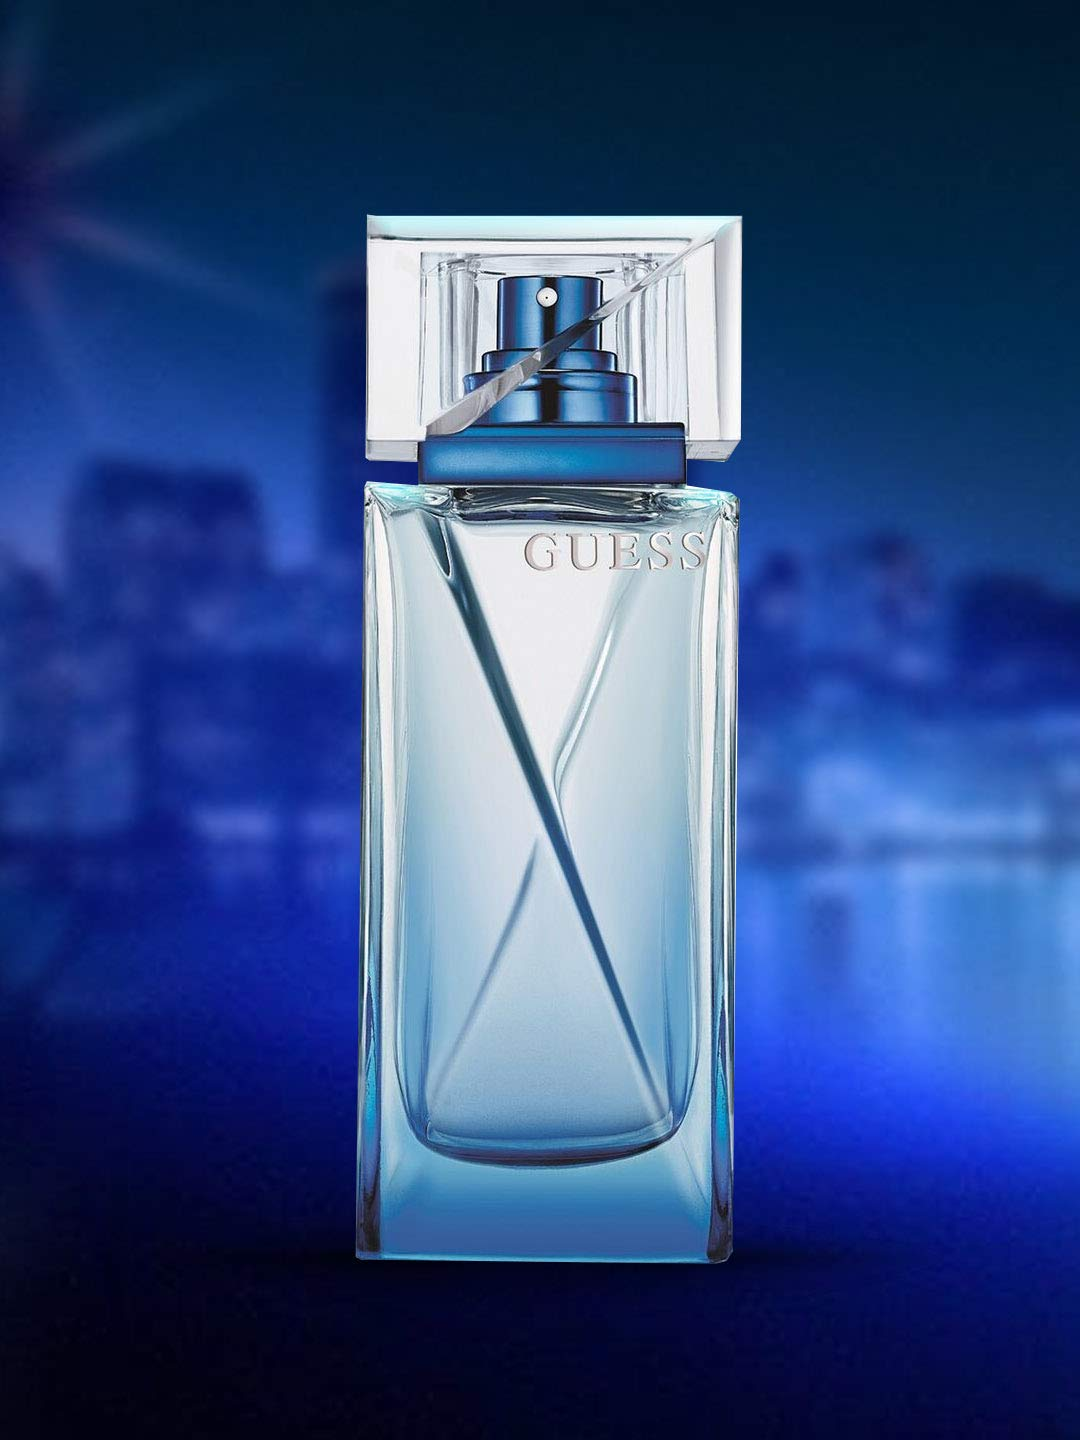 Amazon.com : Guess Night Eau de Toilette Spray for Men, 3.4 Ounce : Beauty